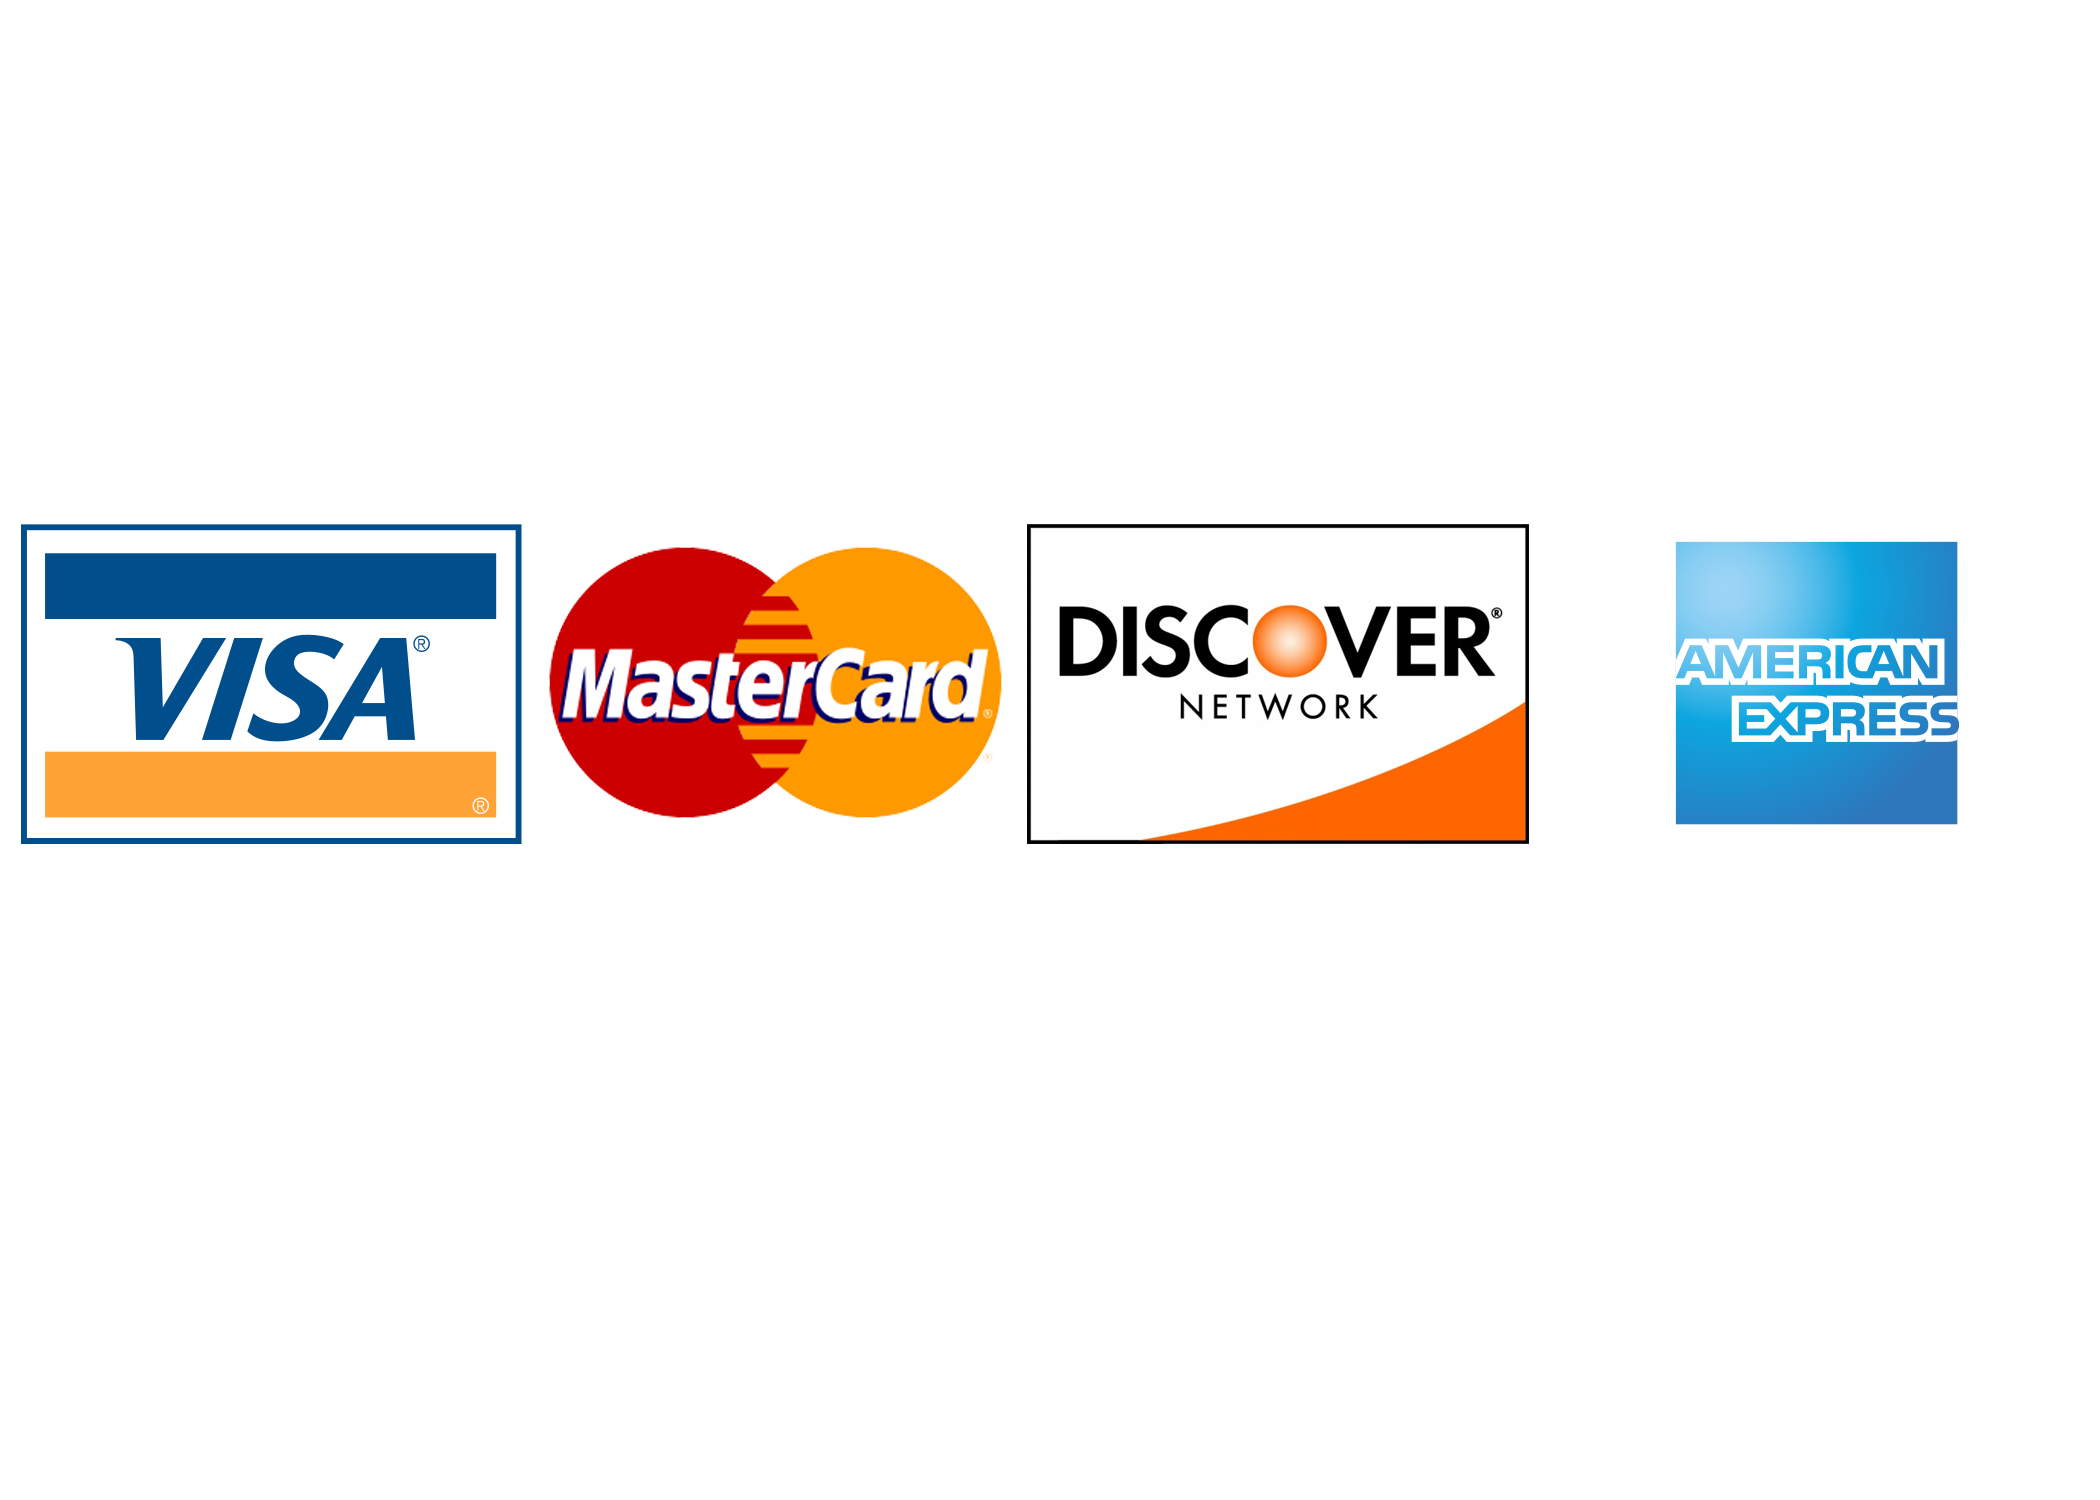 Images of accepted credit cards